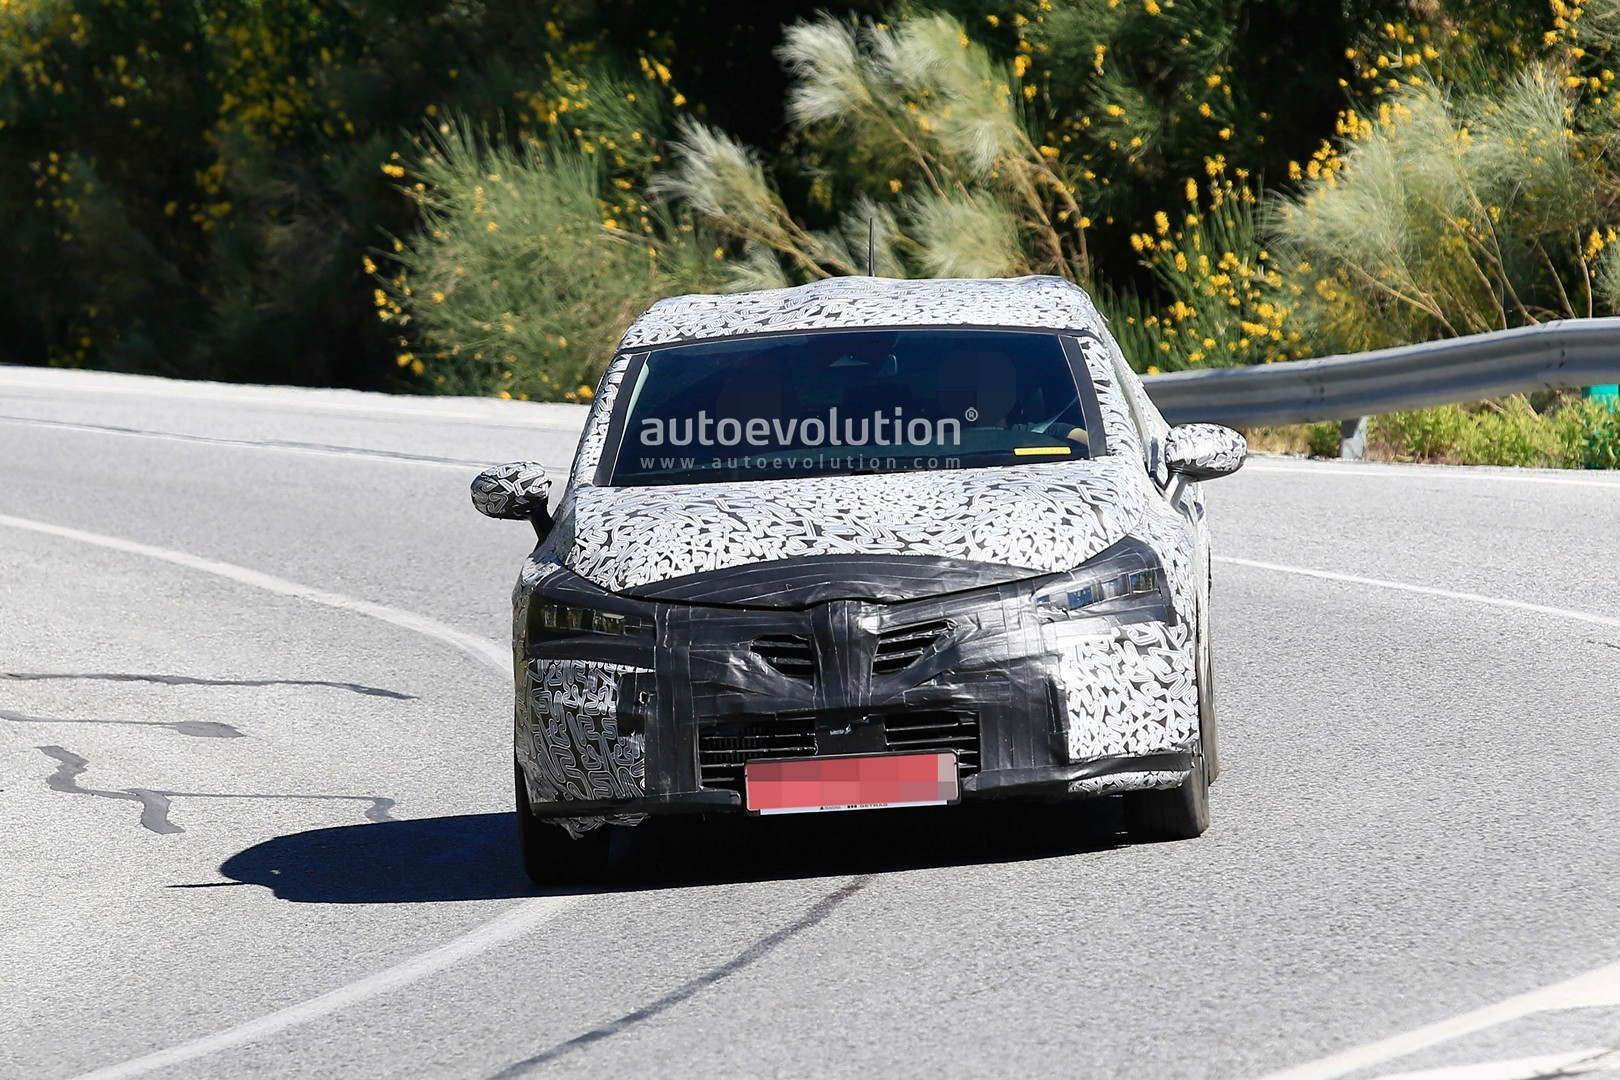 2019 renault clio spied in southern europe autoevolution. Black Bedroom Furniture Sets. Home Design Ideas